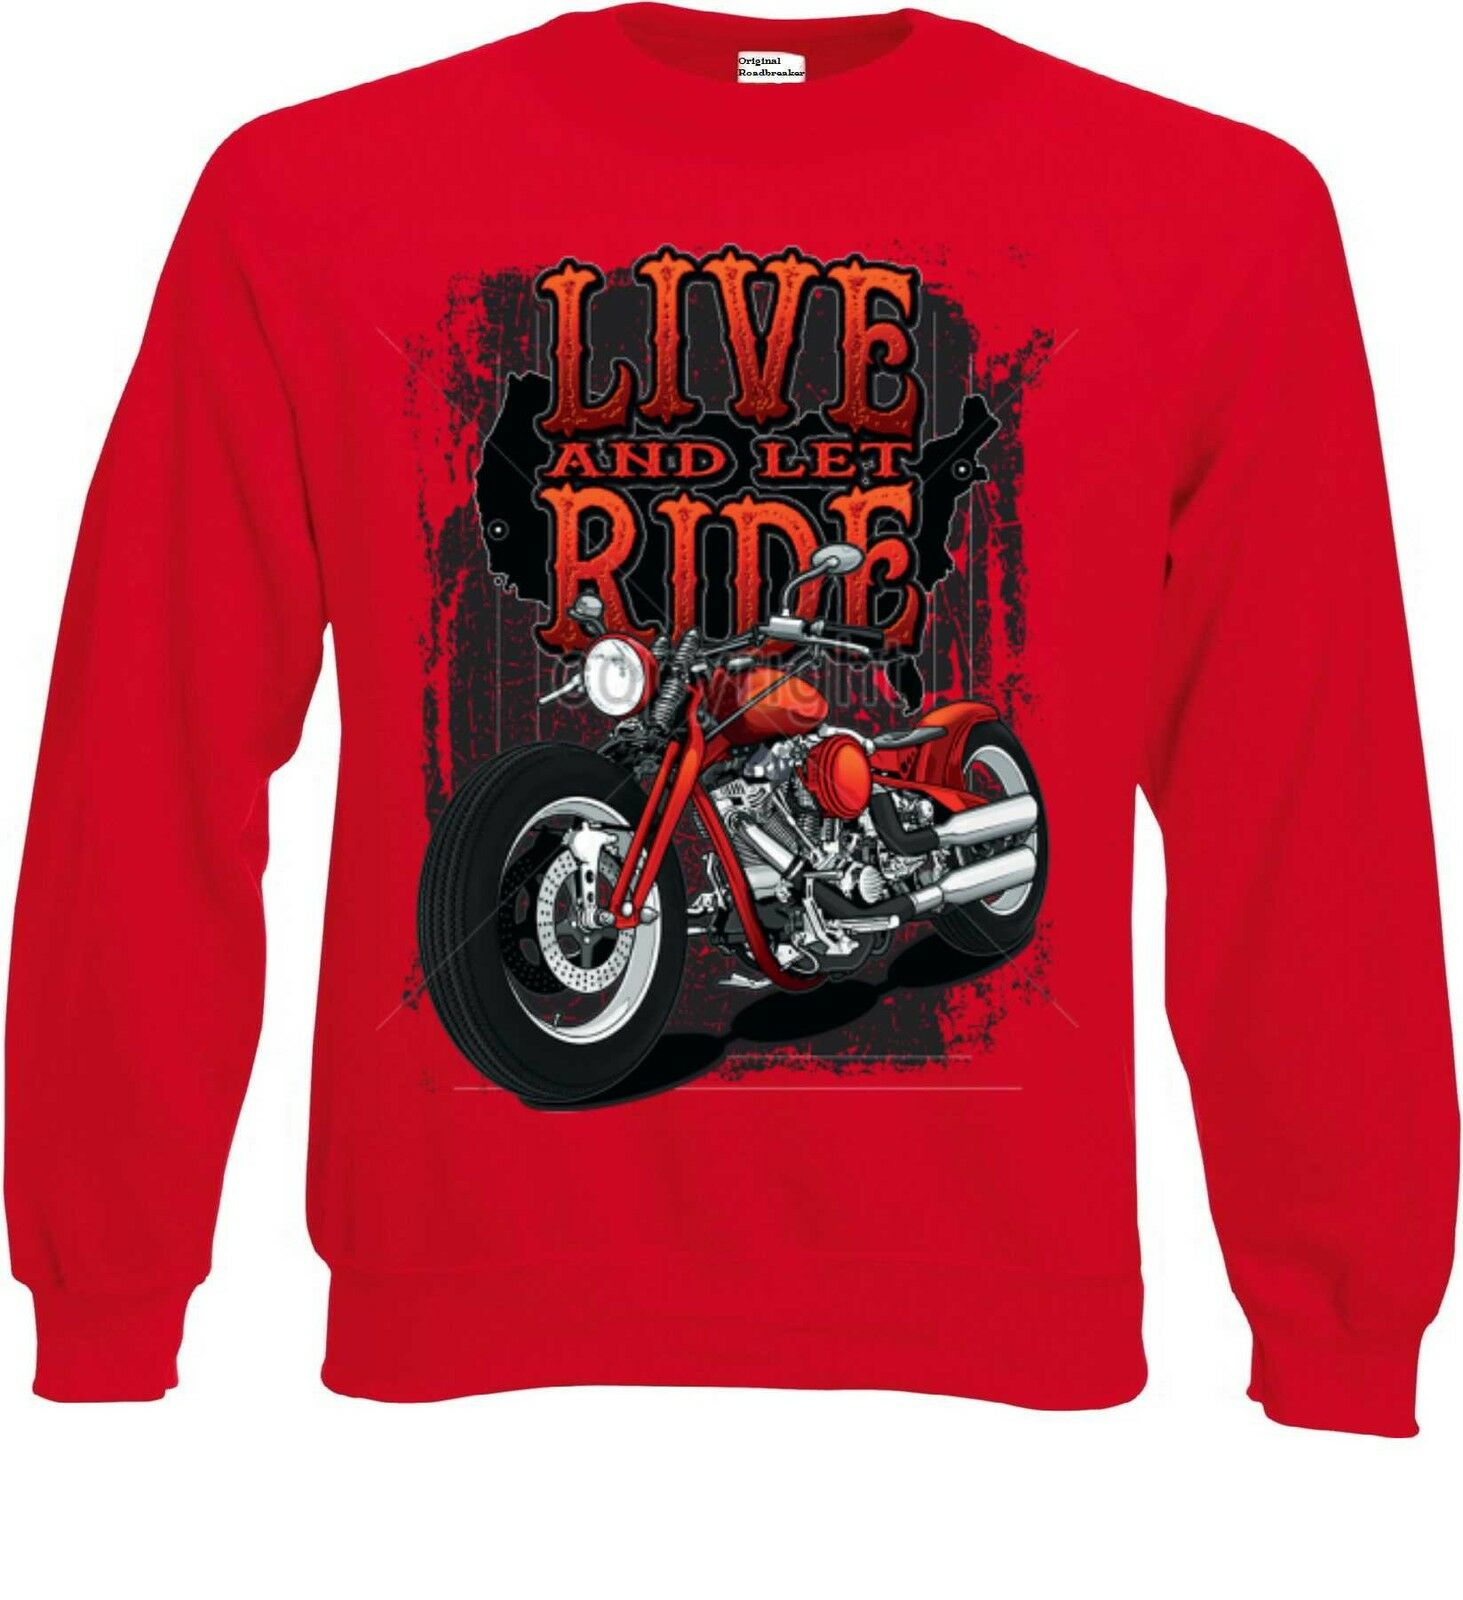 Sweatshirt red Biker Chopper HD Chopper&V Twin Motiv Modell Live And Let Ride